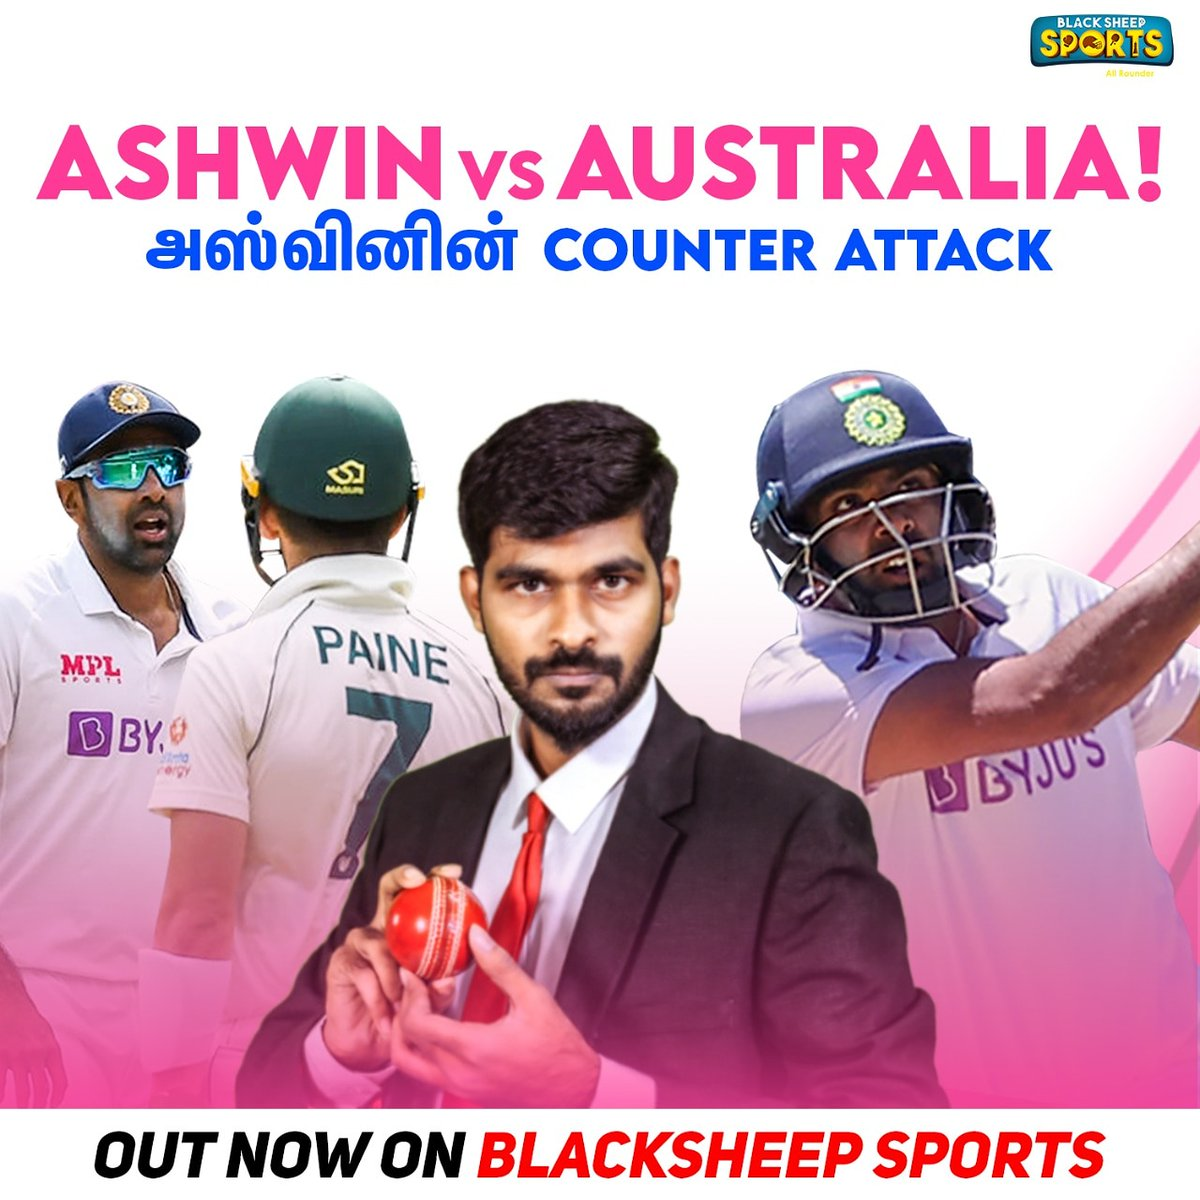 Special video about @ashwinravi99 's performance vs Australia in Test (Out Now).  Watch full video :   #ravichandranashwin #ashwin #indvsaus #ausvsind #indvaus #ausvind #pinktest #bordergavaskartrophy #blacksheepsports #blacksheep #cricanandha